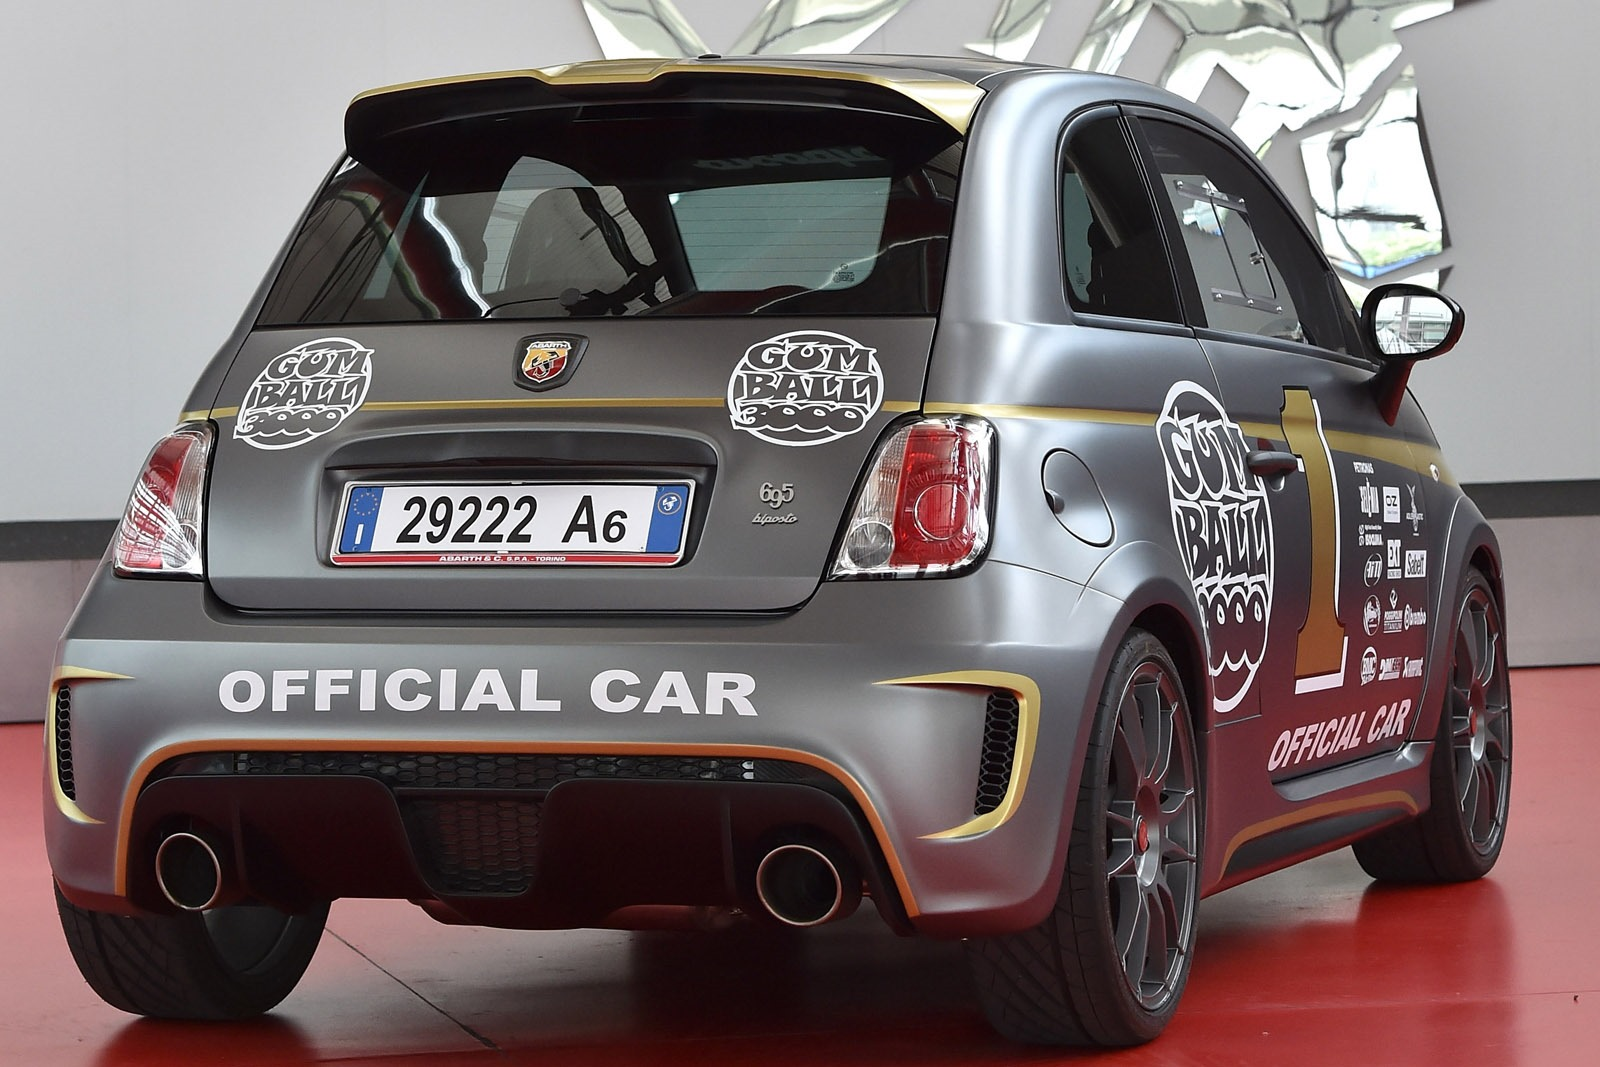 [Fiat] 500 Abarth - Page 13 Abarth-695-Biposto-Gumball-official-car-3%25255B4%25255D